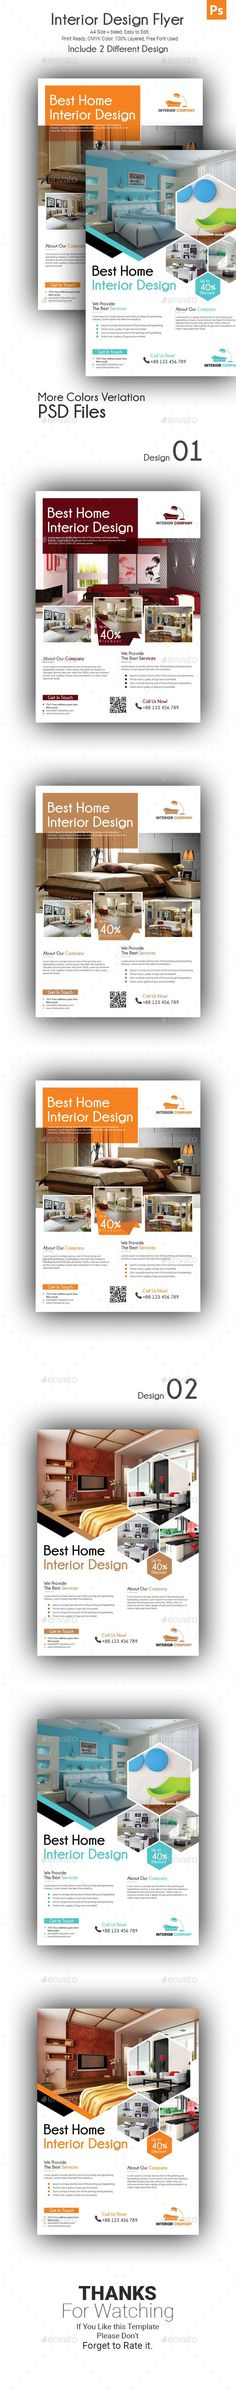 Set of Interior Design flyer template included 2 flyers with 2 design options. You can also use it in other purpose like real estate business promotion, advertising homes, property sale, marketing flyer, houses for rent or real estate listing. This modern tem #realestateadvertising